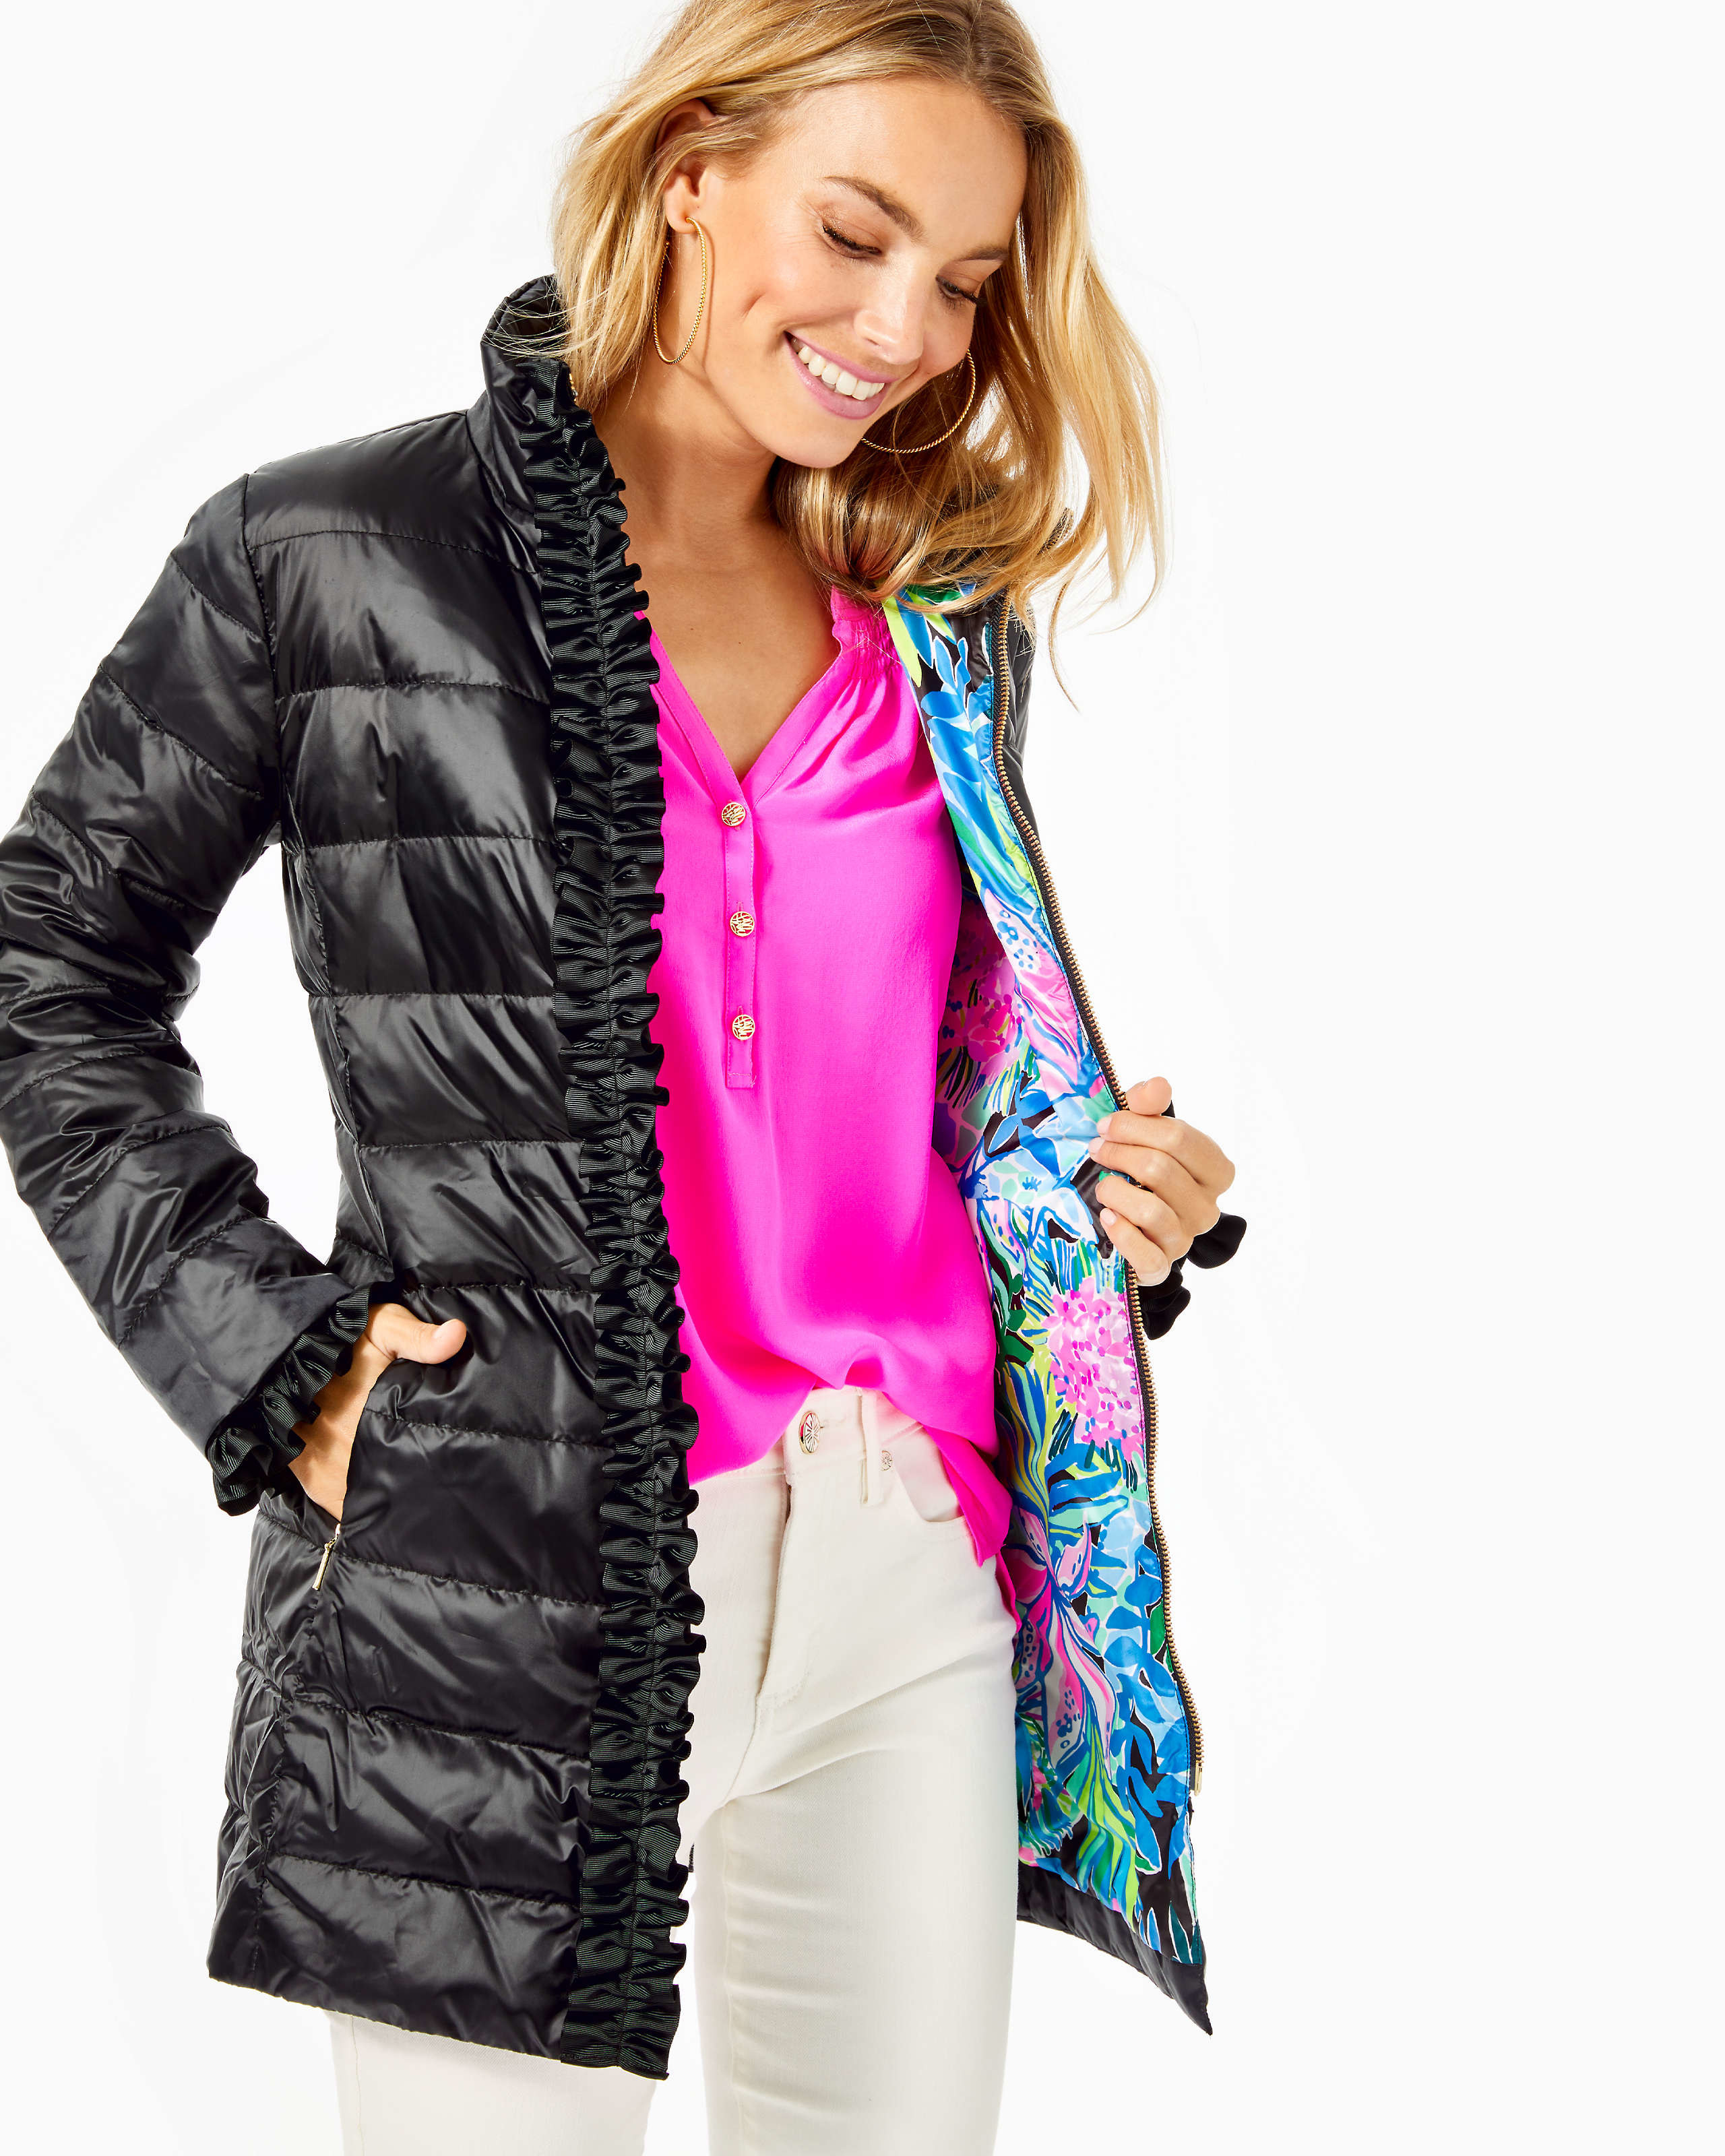 a model in a long black puffer coat with ribbons along the seams and a colorful lilly pulitzer print on the inside